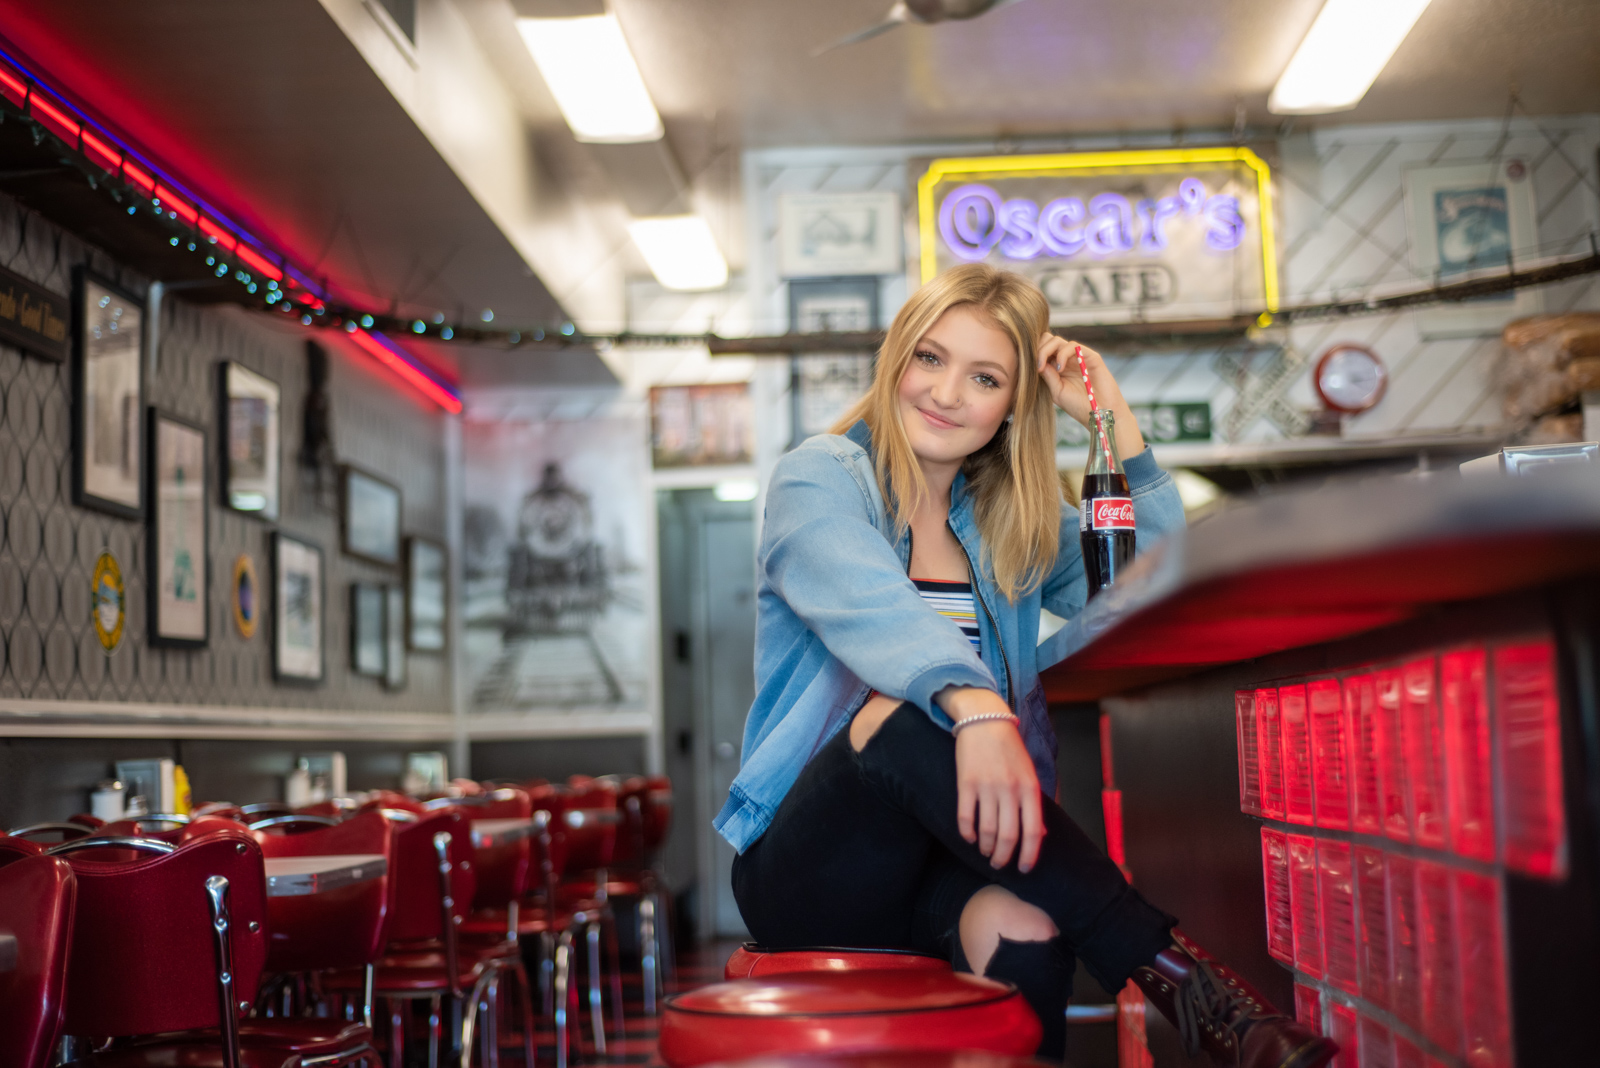 Senior Pictures at Oscar's Diner in Durango, CO